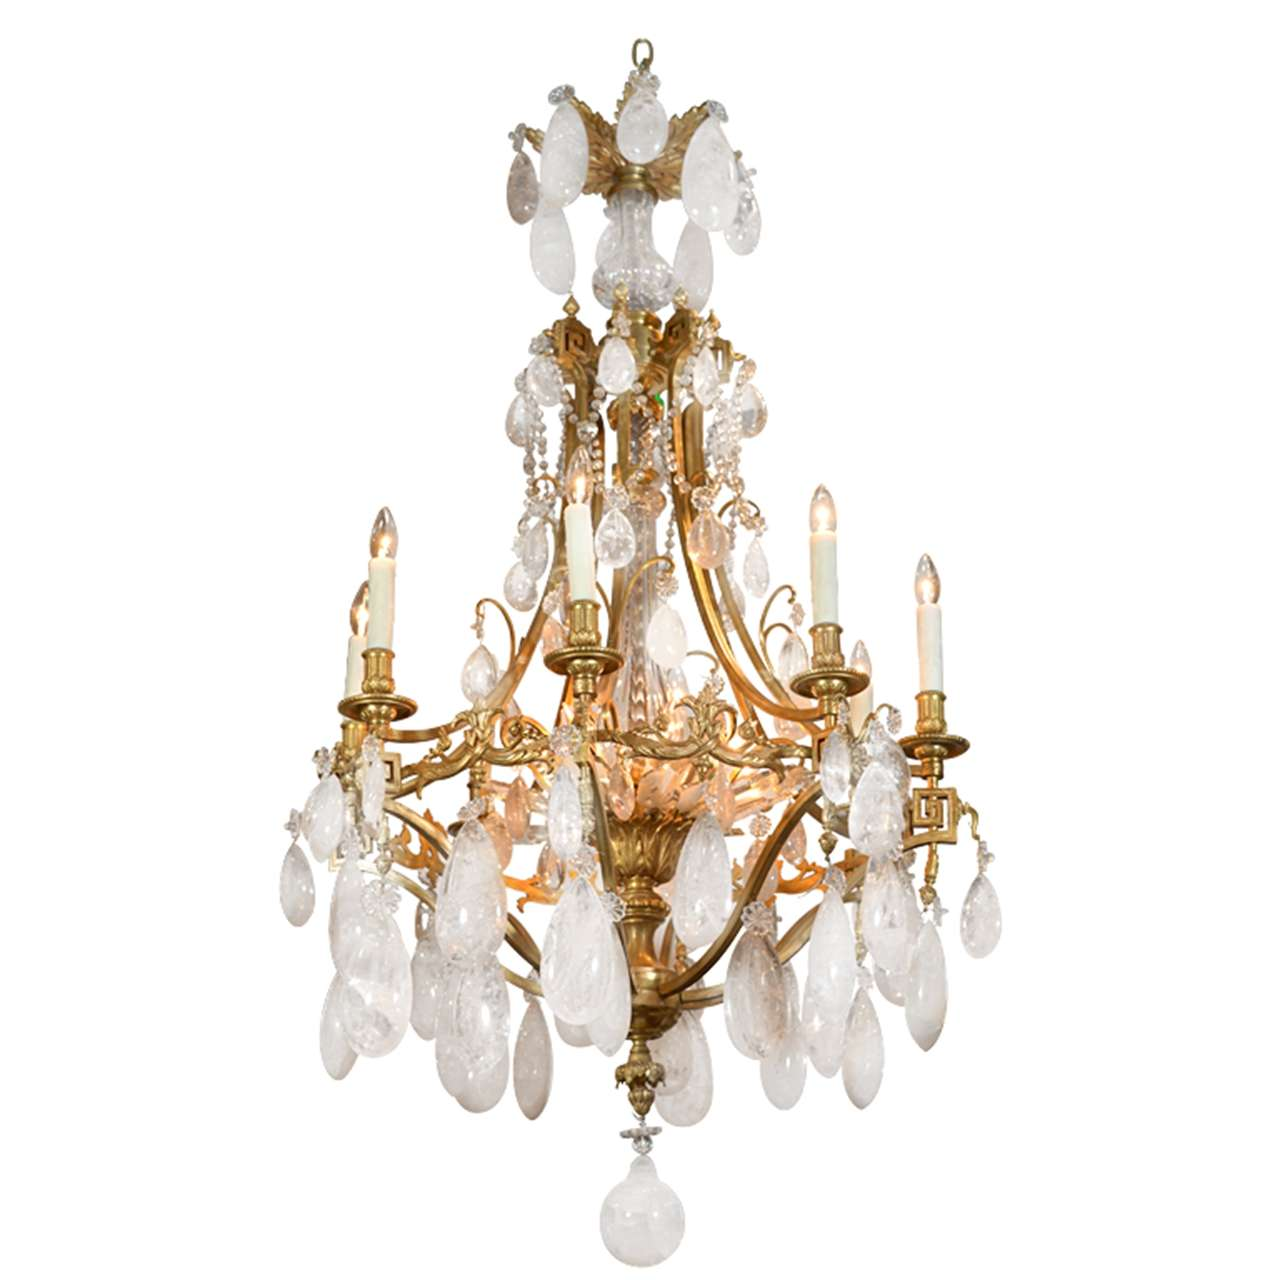 19th C Important Rock Crystal And Gilt Bronze Russian Chandelier